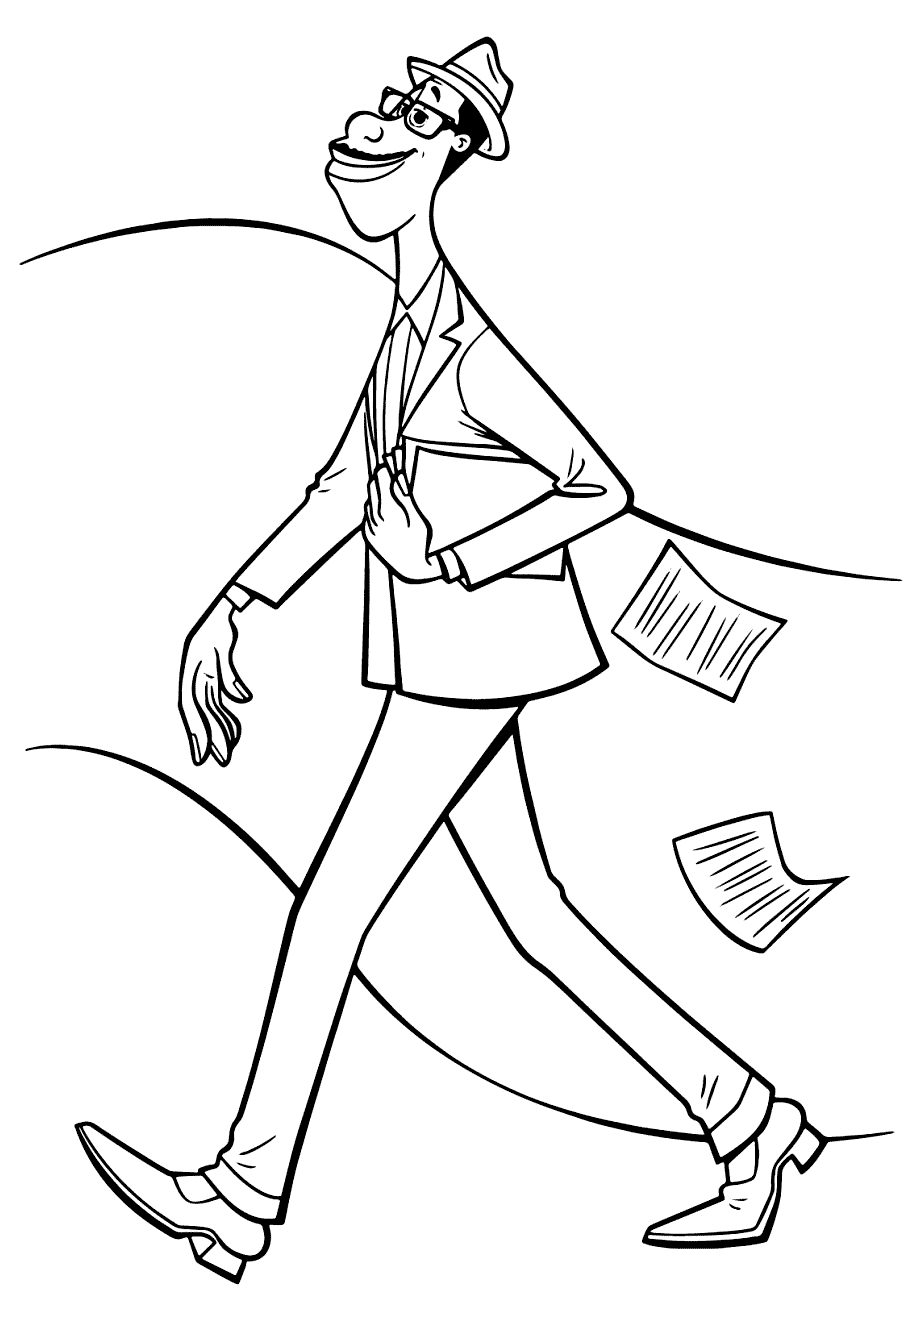 Joe walking Coloring Page